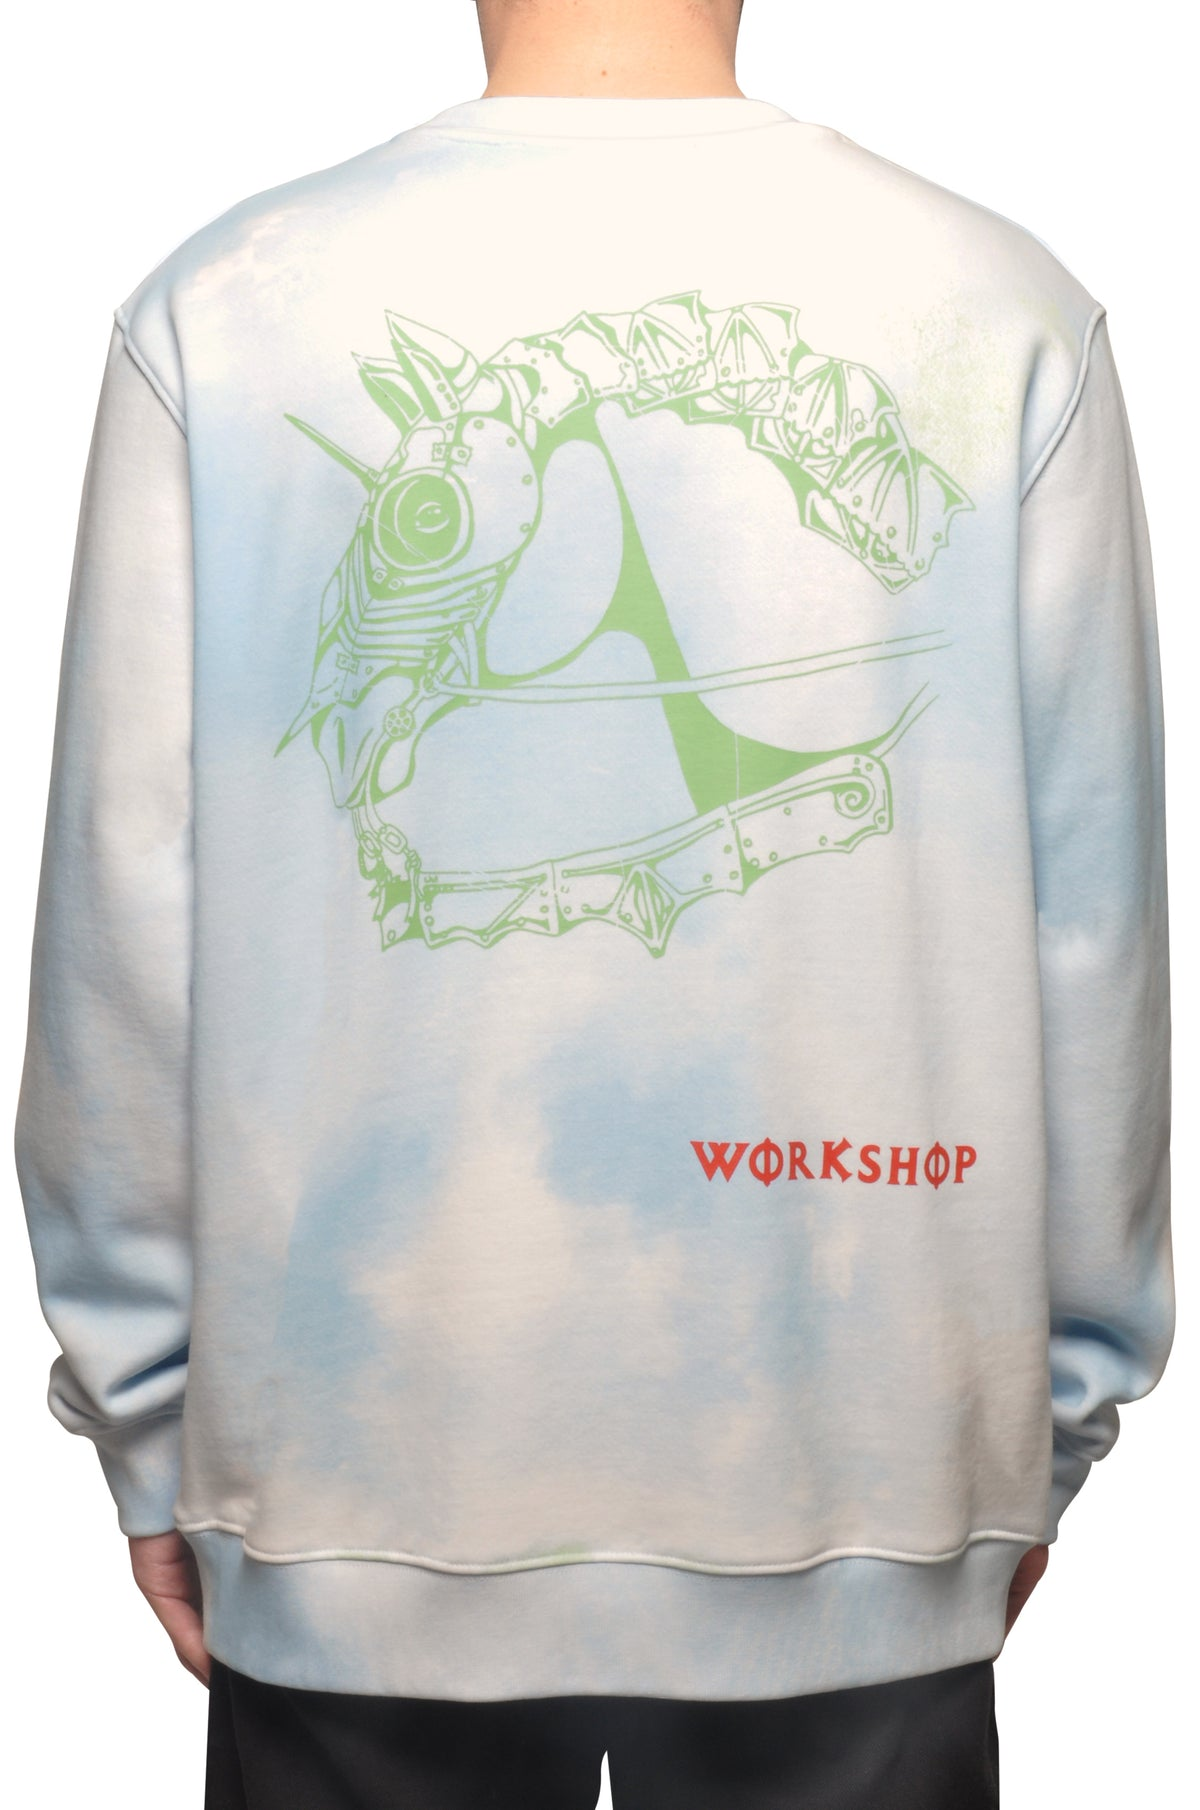 032c COSMIC WORKSHOP 'Bard' Sweatshirt Powder Blue - 032c